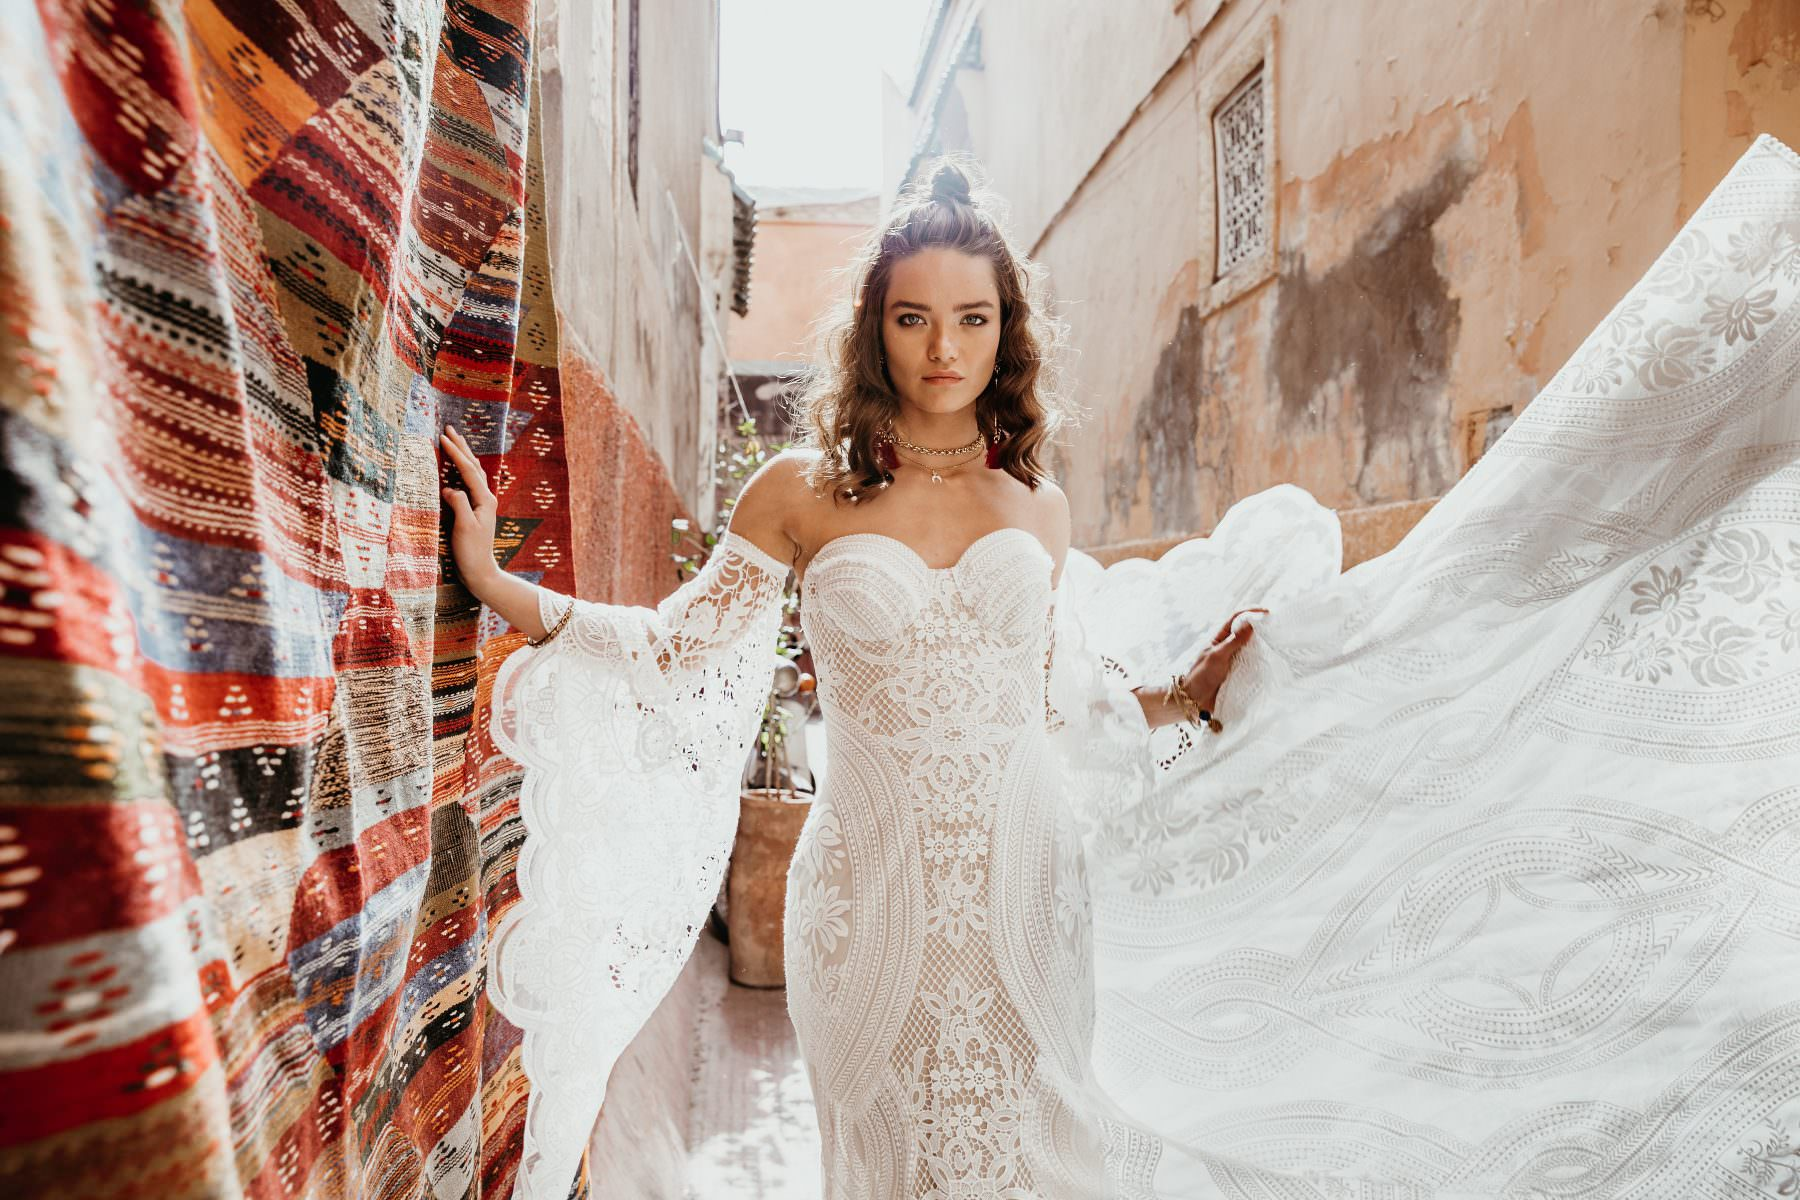 Rue De Seine Adara Wildhearts wedding dress bridal shop store gowns christchurch wellington